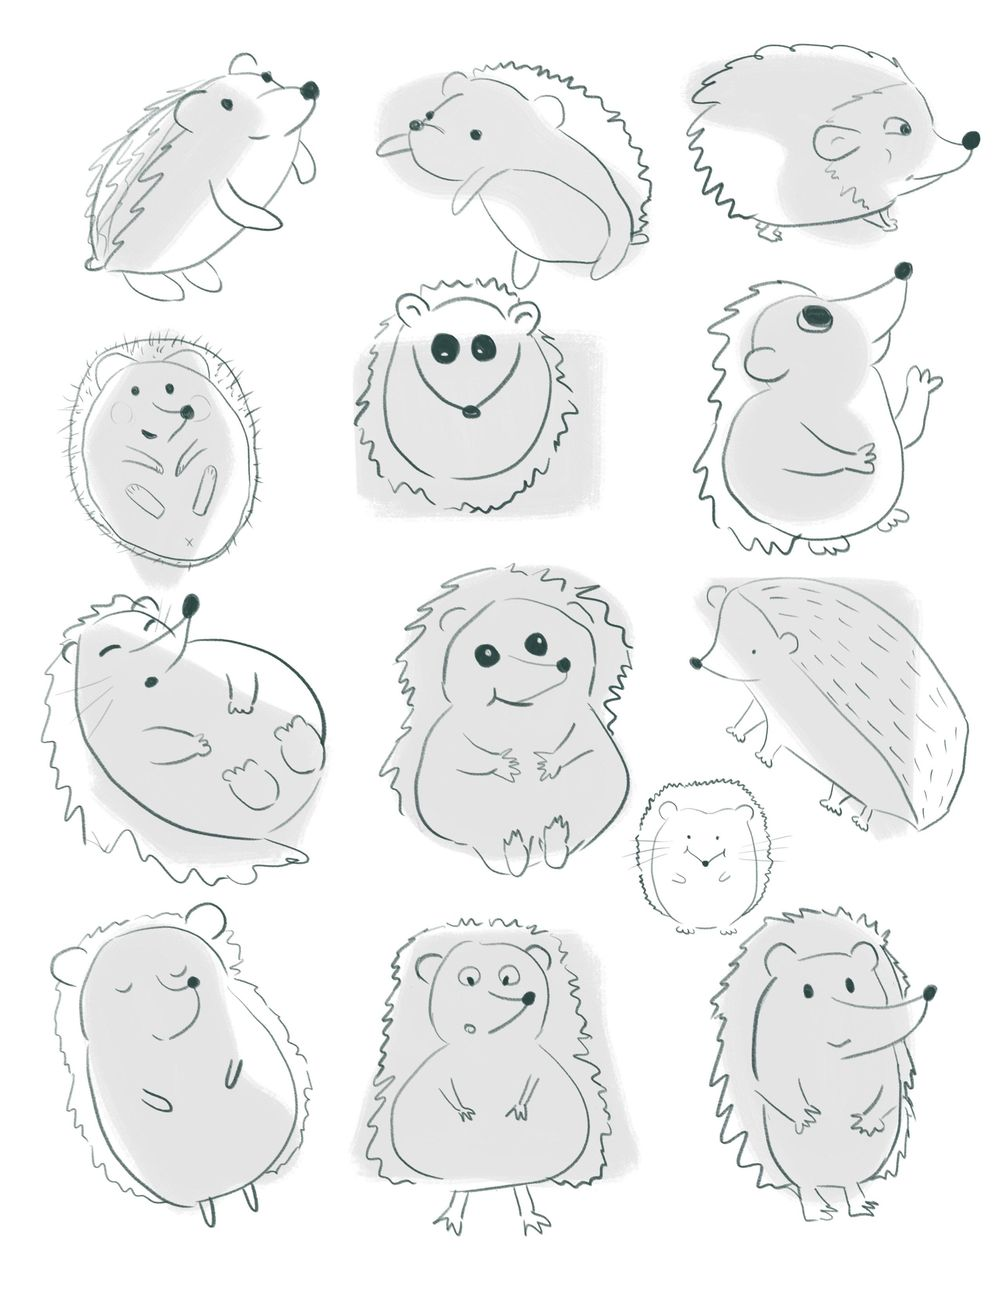 Cute Hedgehog - image 1 - student project